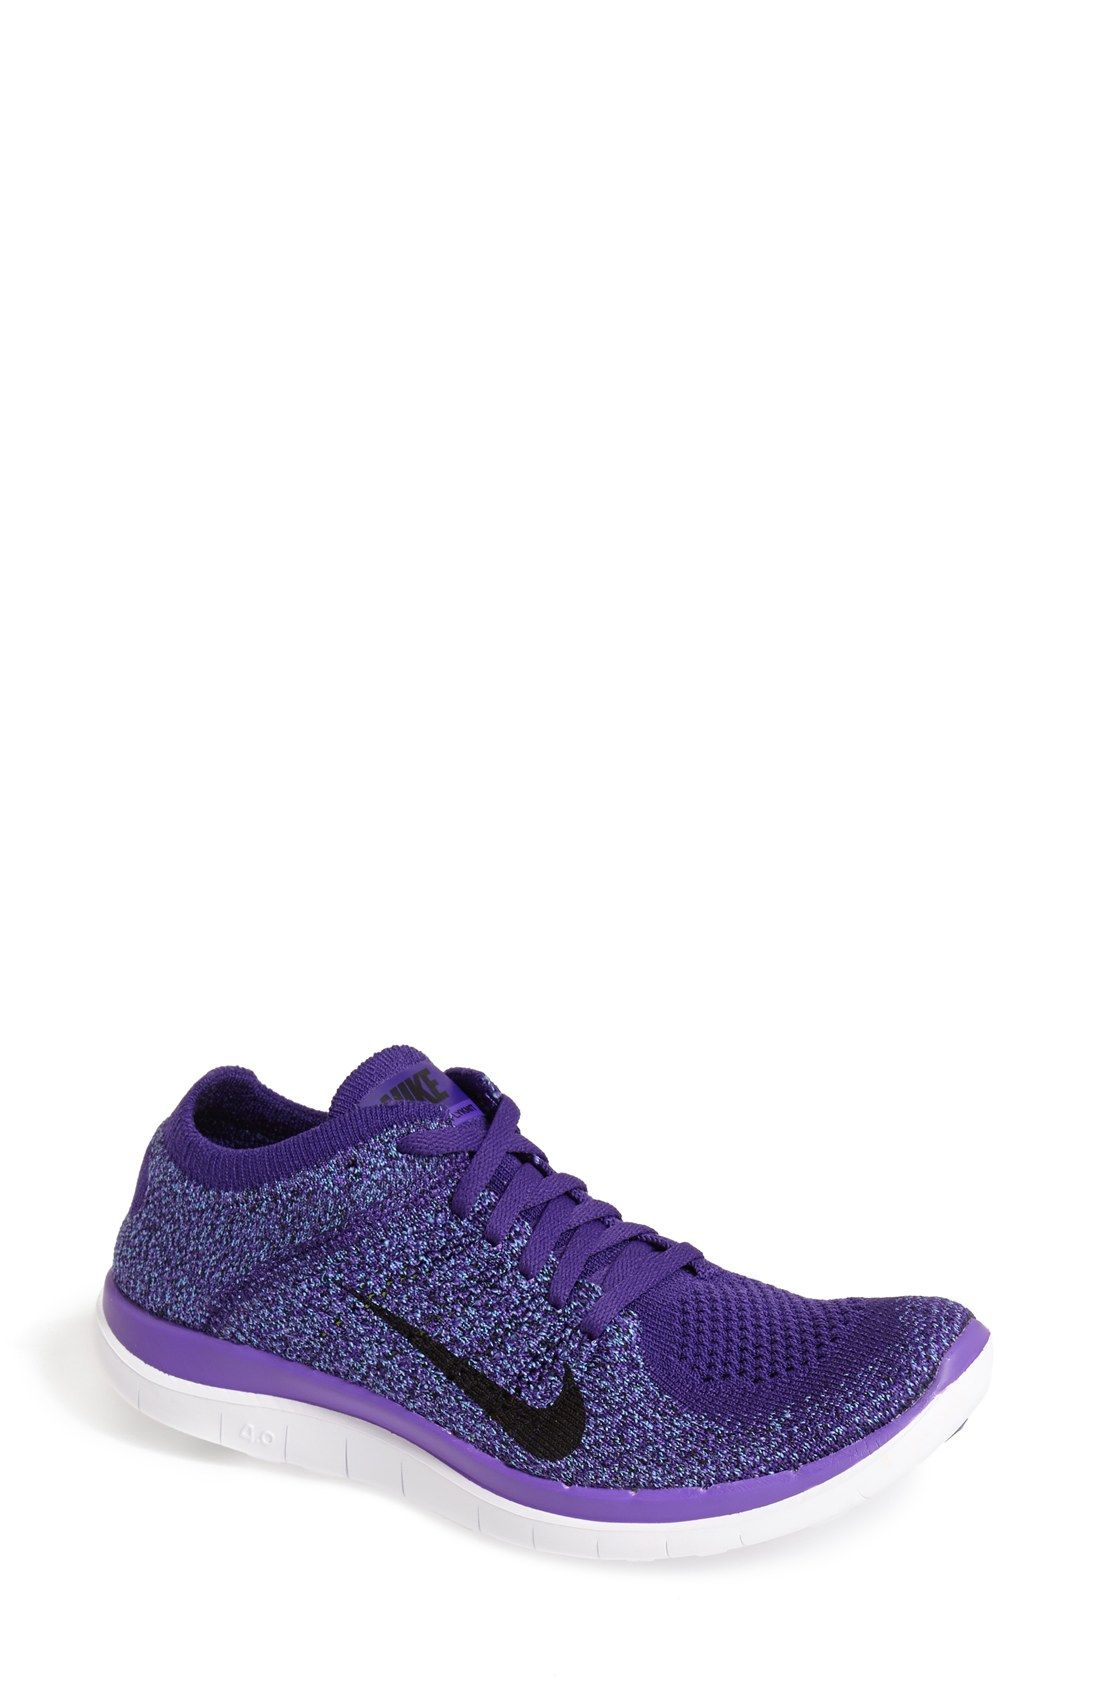 51d4203f0a76 Crushing on these purple Nike running shoes.